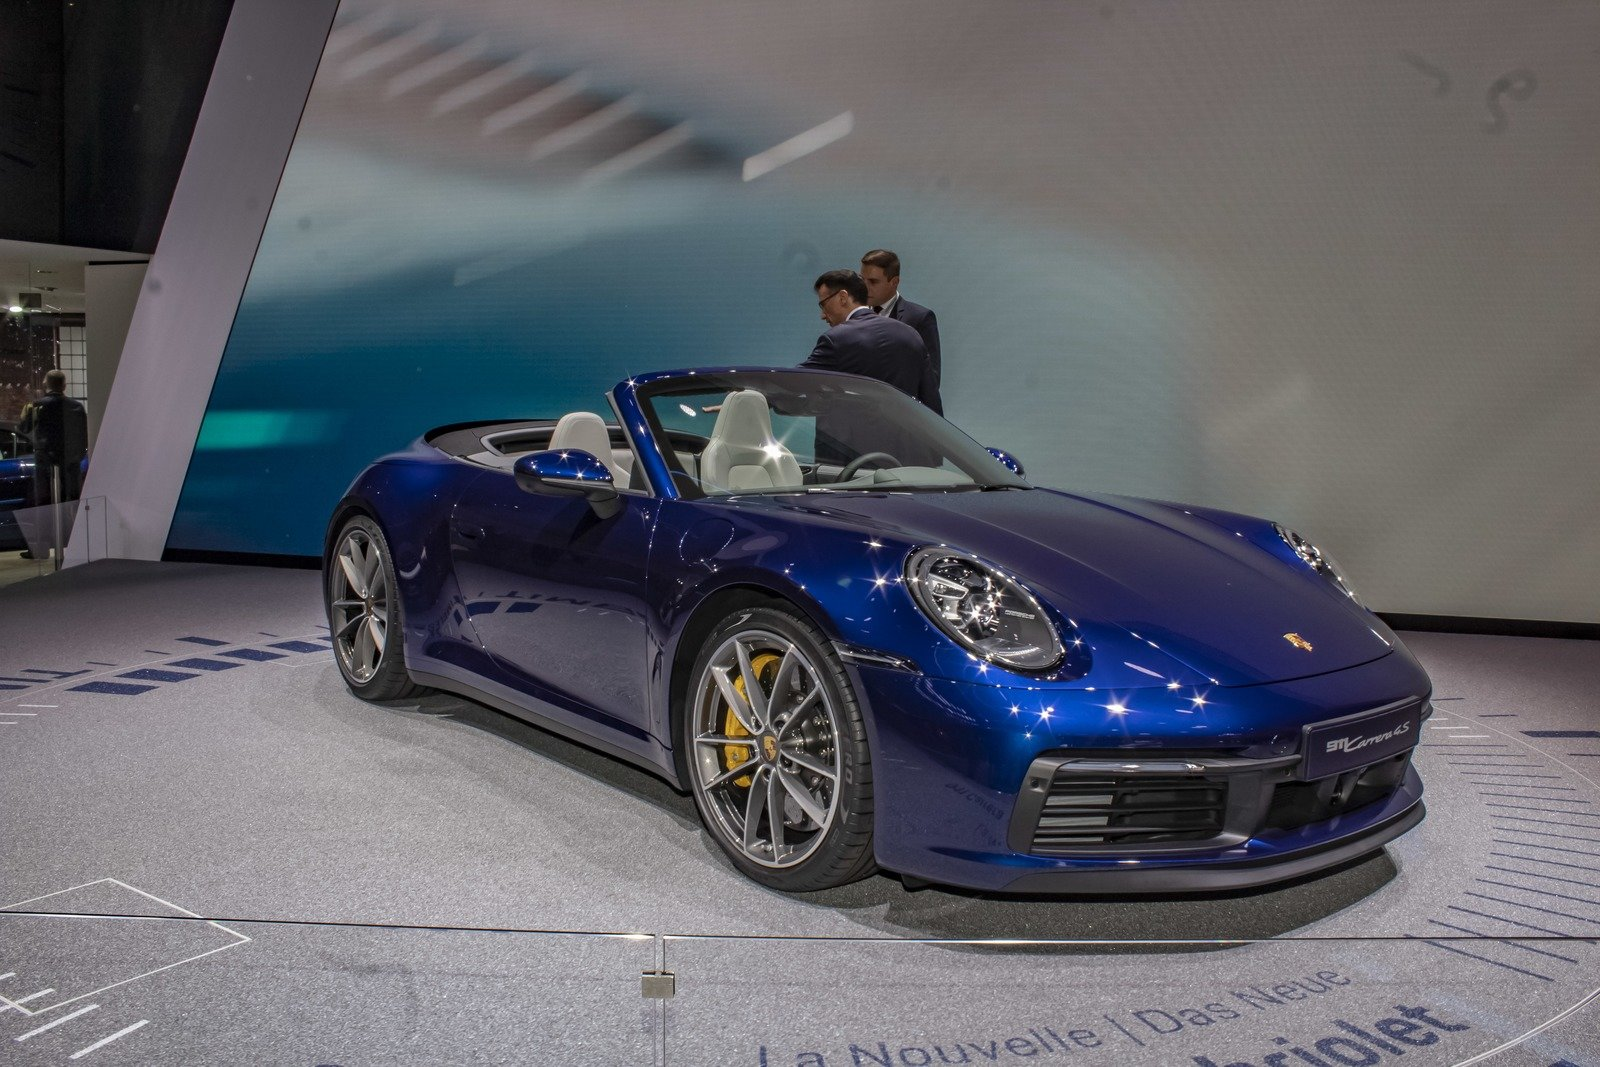 photo report on the porsche 911 cabriolet 2020 without a roof Photo Report on the Porsche 911 Cabriolet 2020 without a roof                                        911 2020